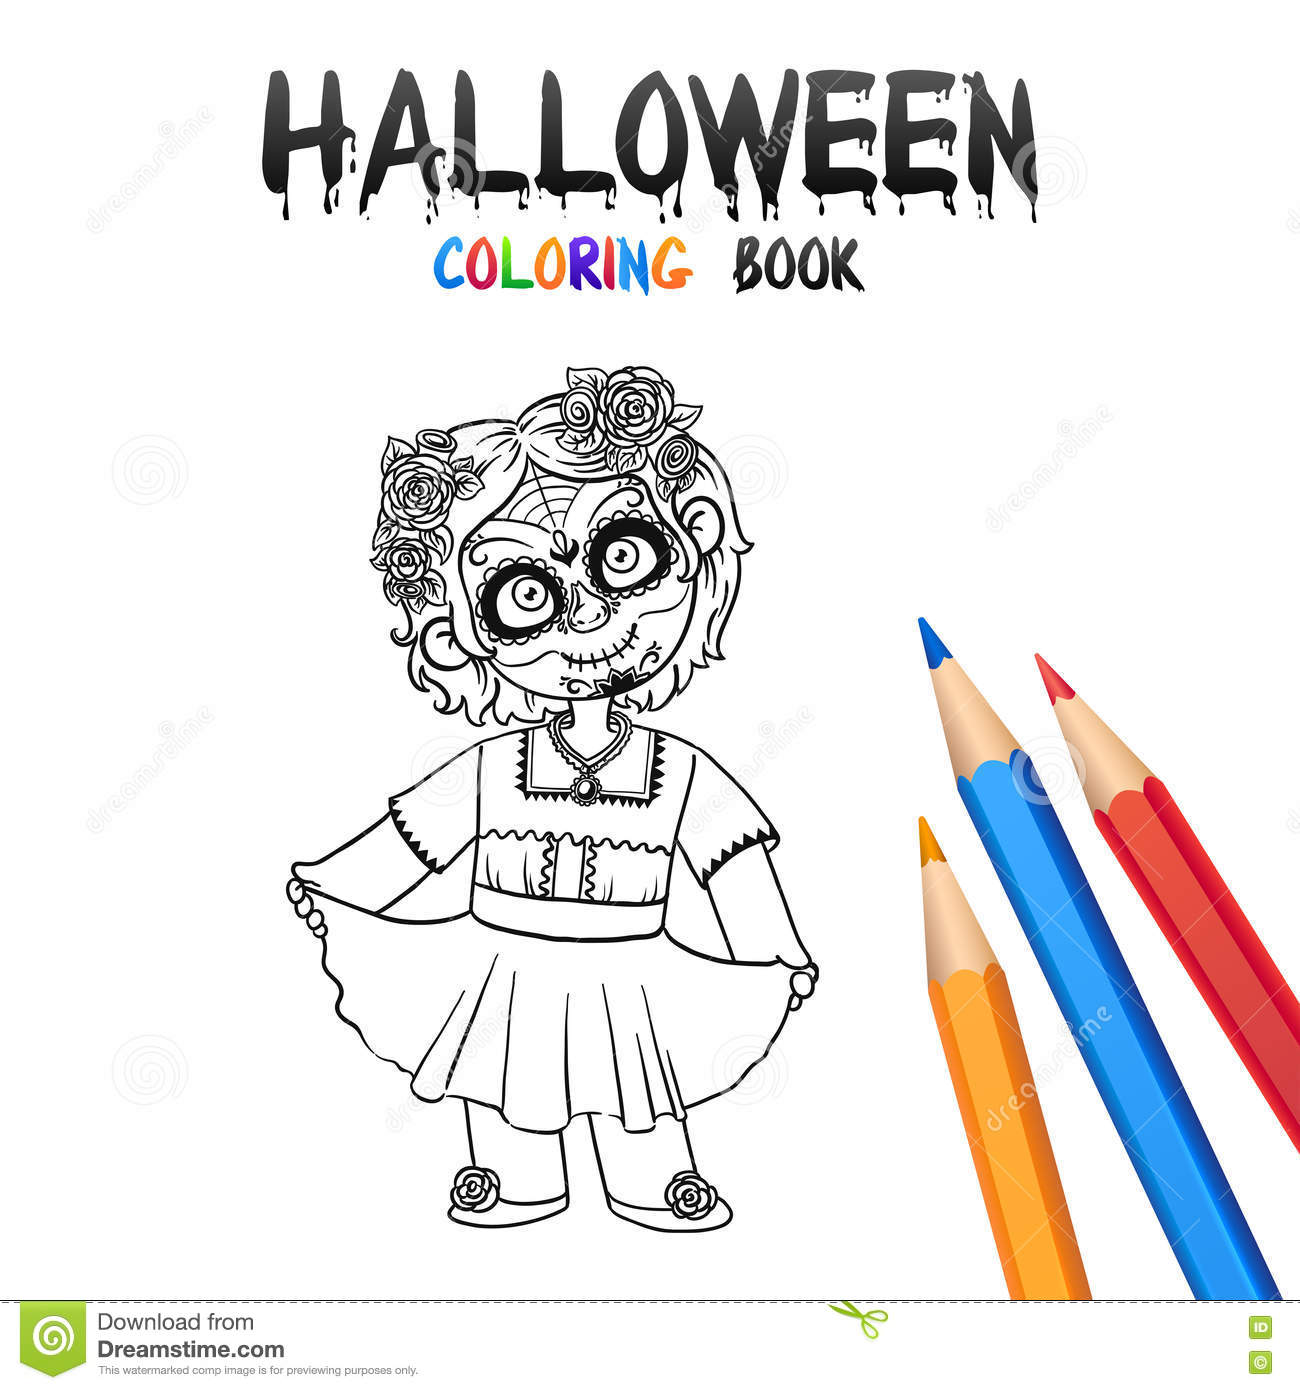 Santa Muerte Coloring Pages With Halloween Book Cute Baby Cartoon Character Stock Vector